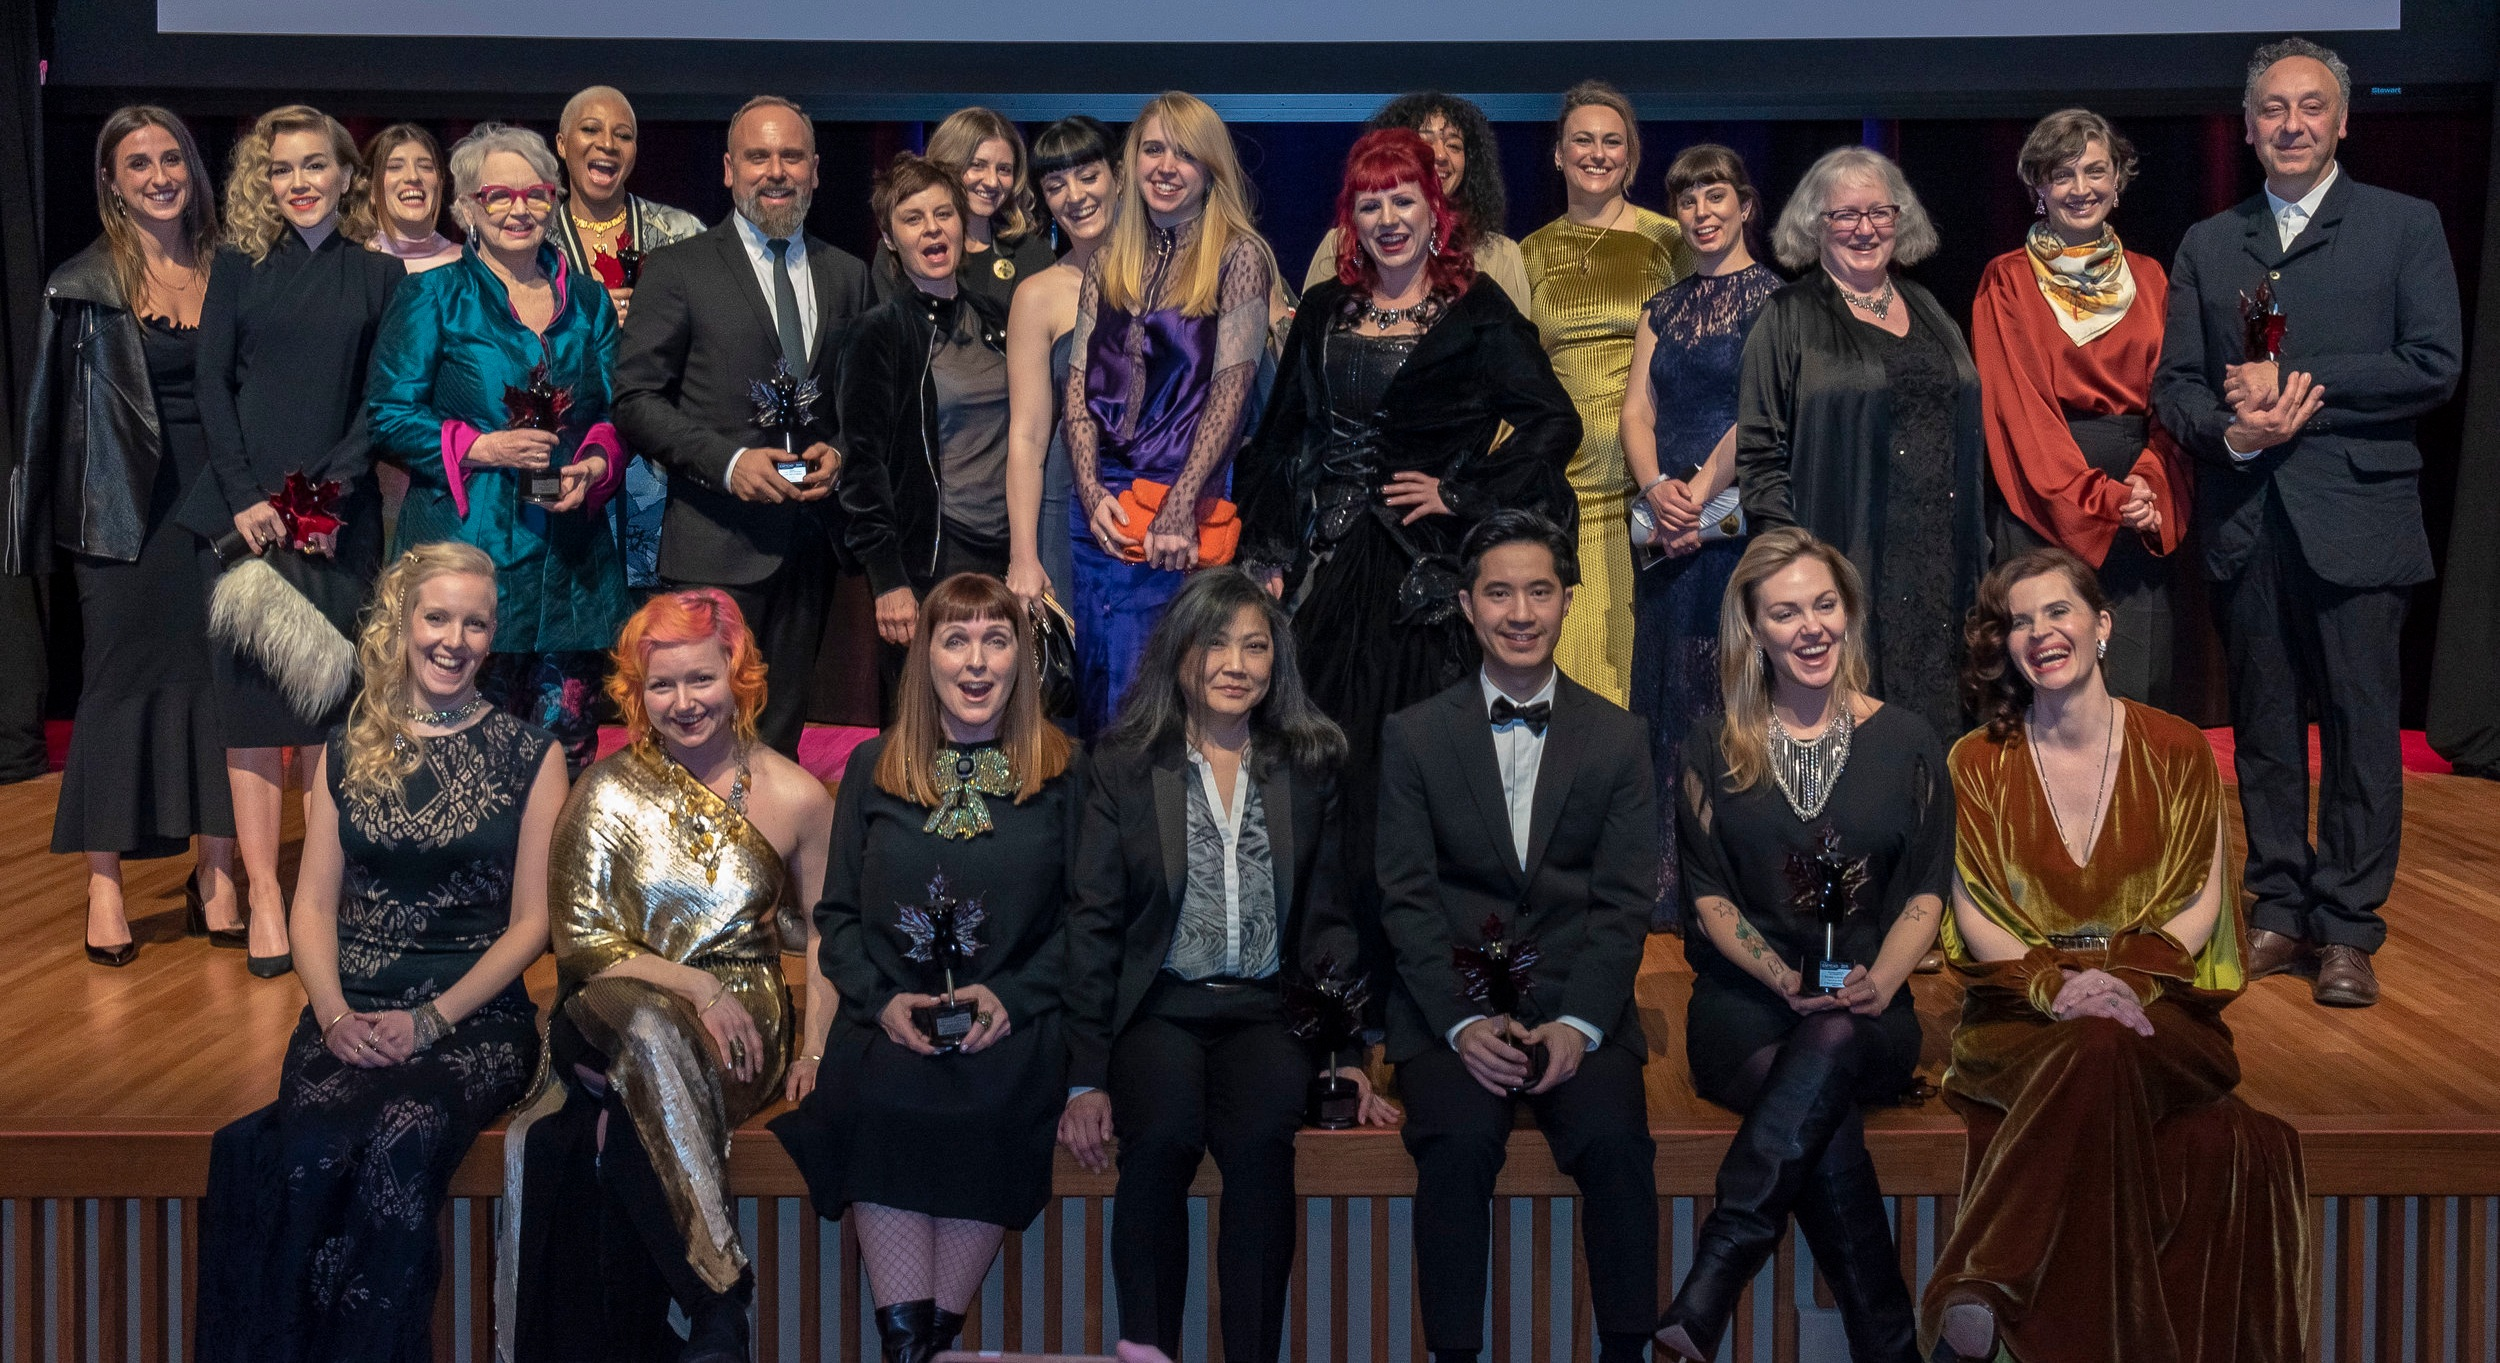 The 2019 Award Winners and their teams